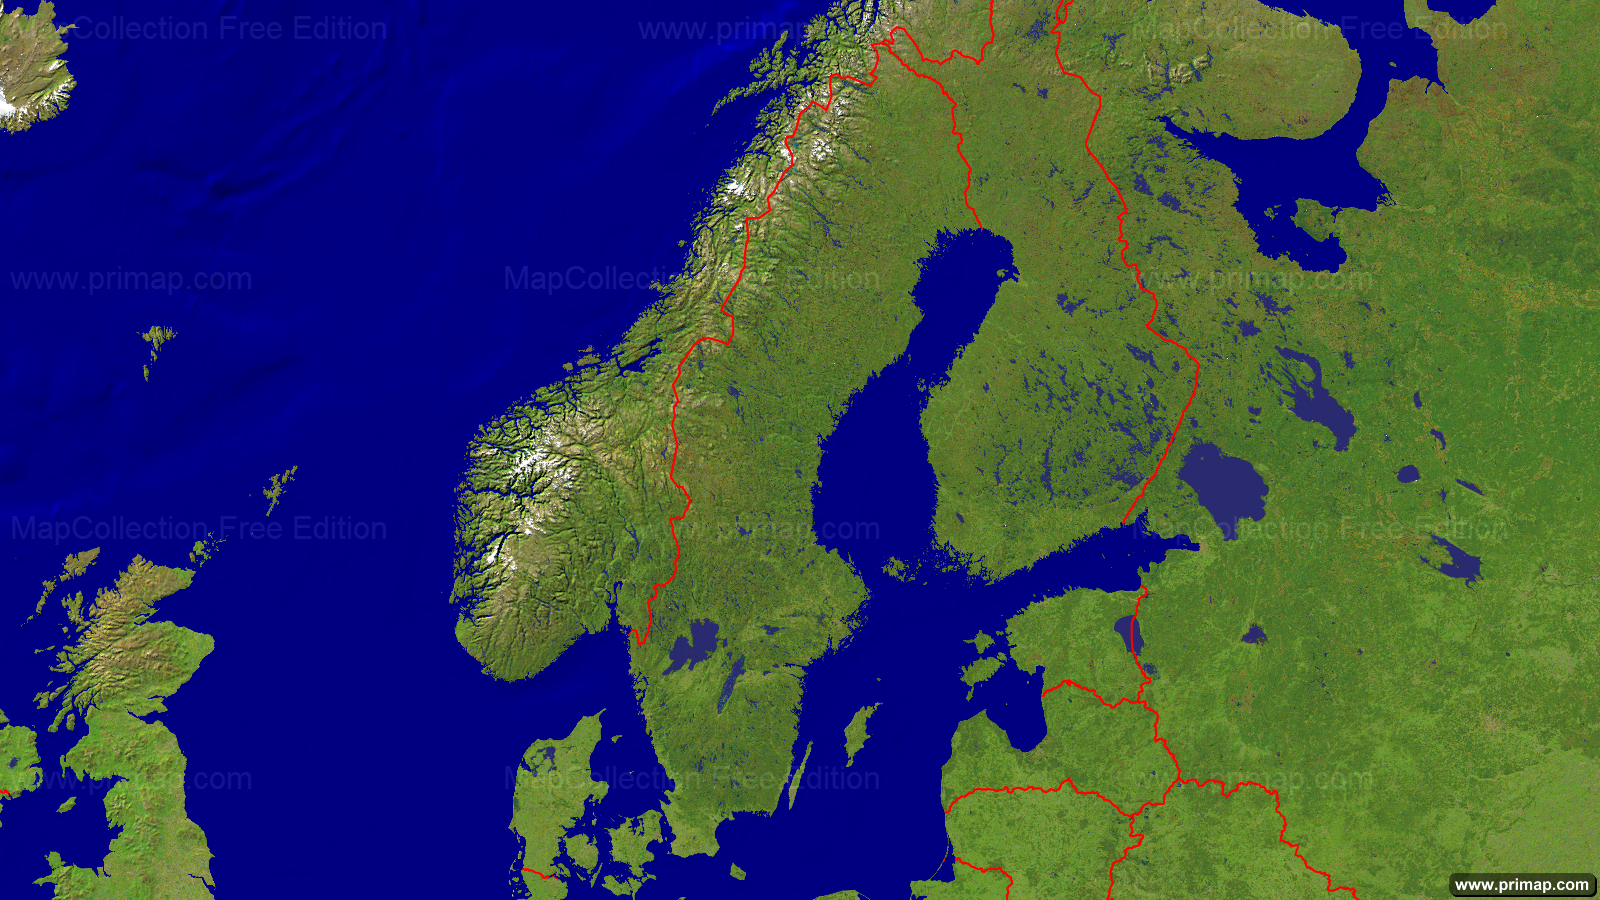 Primap National Maps - Sweden map satellite